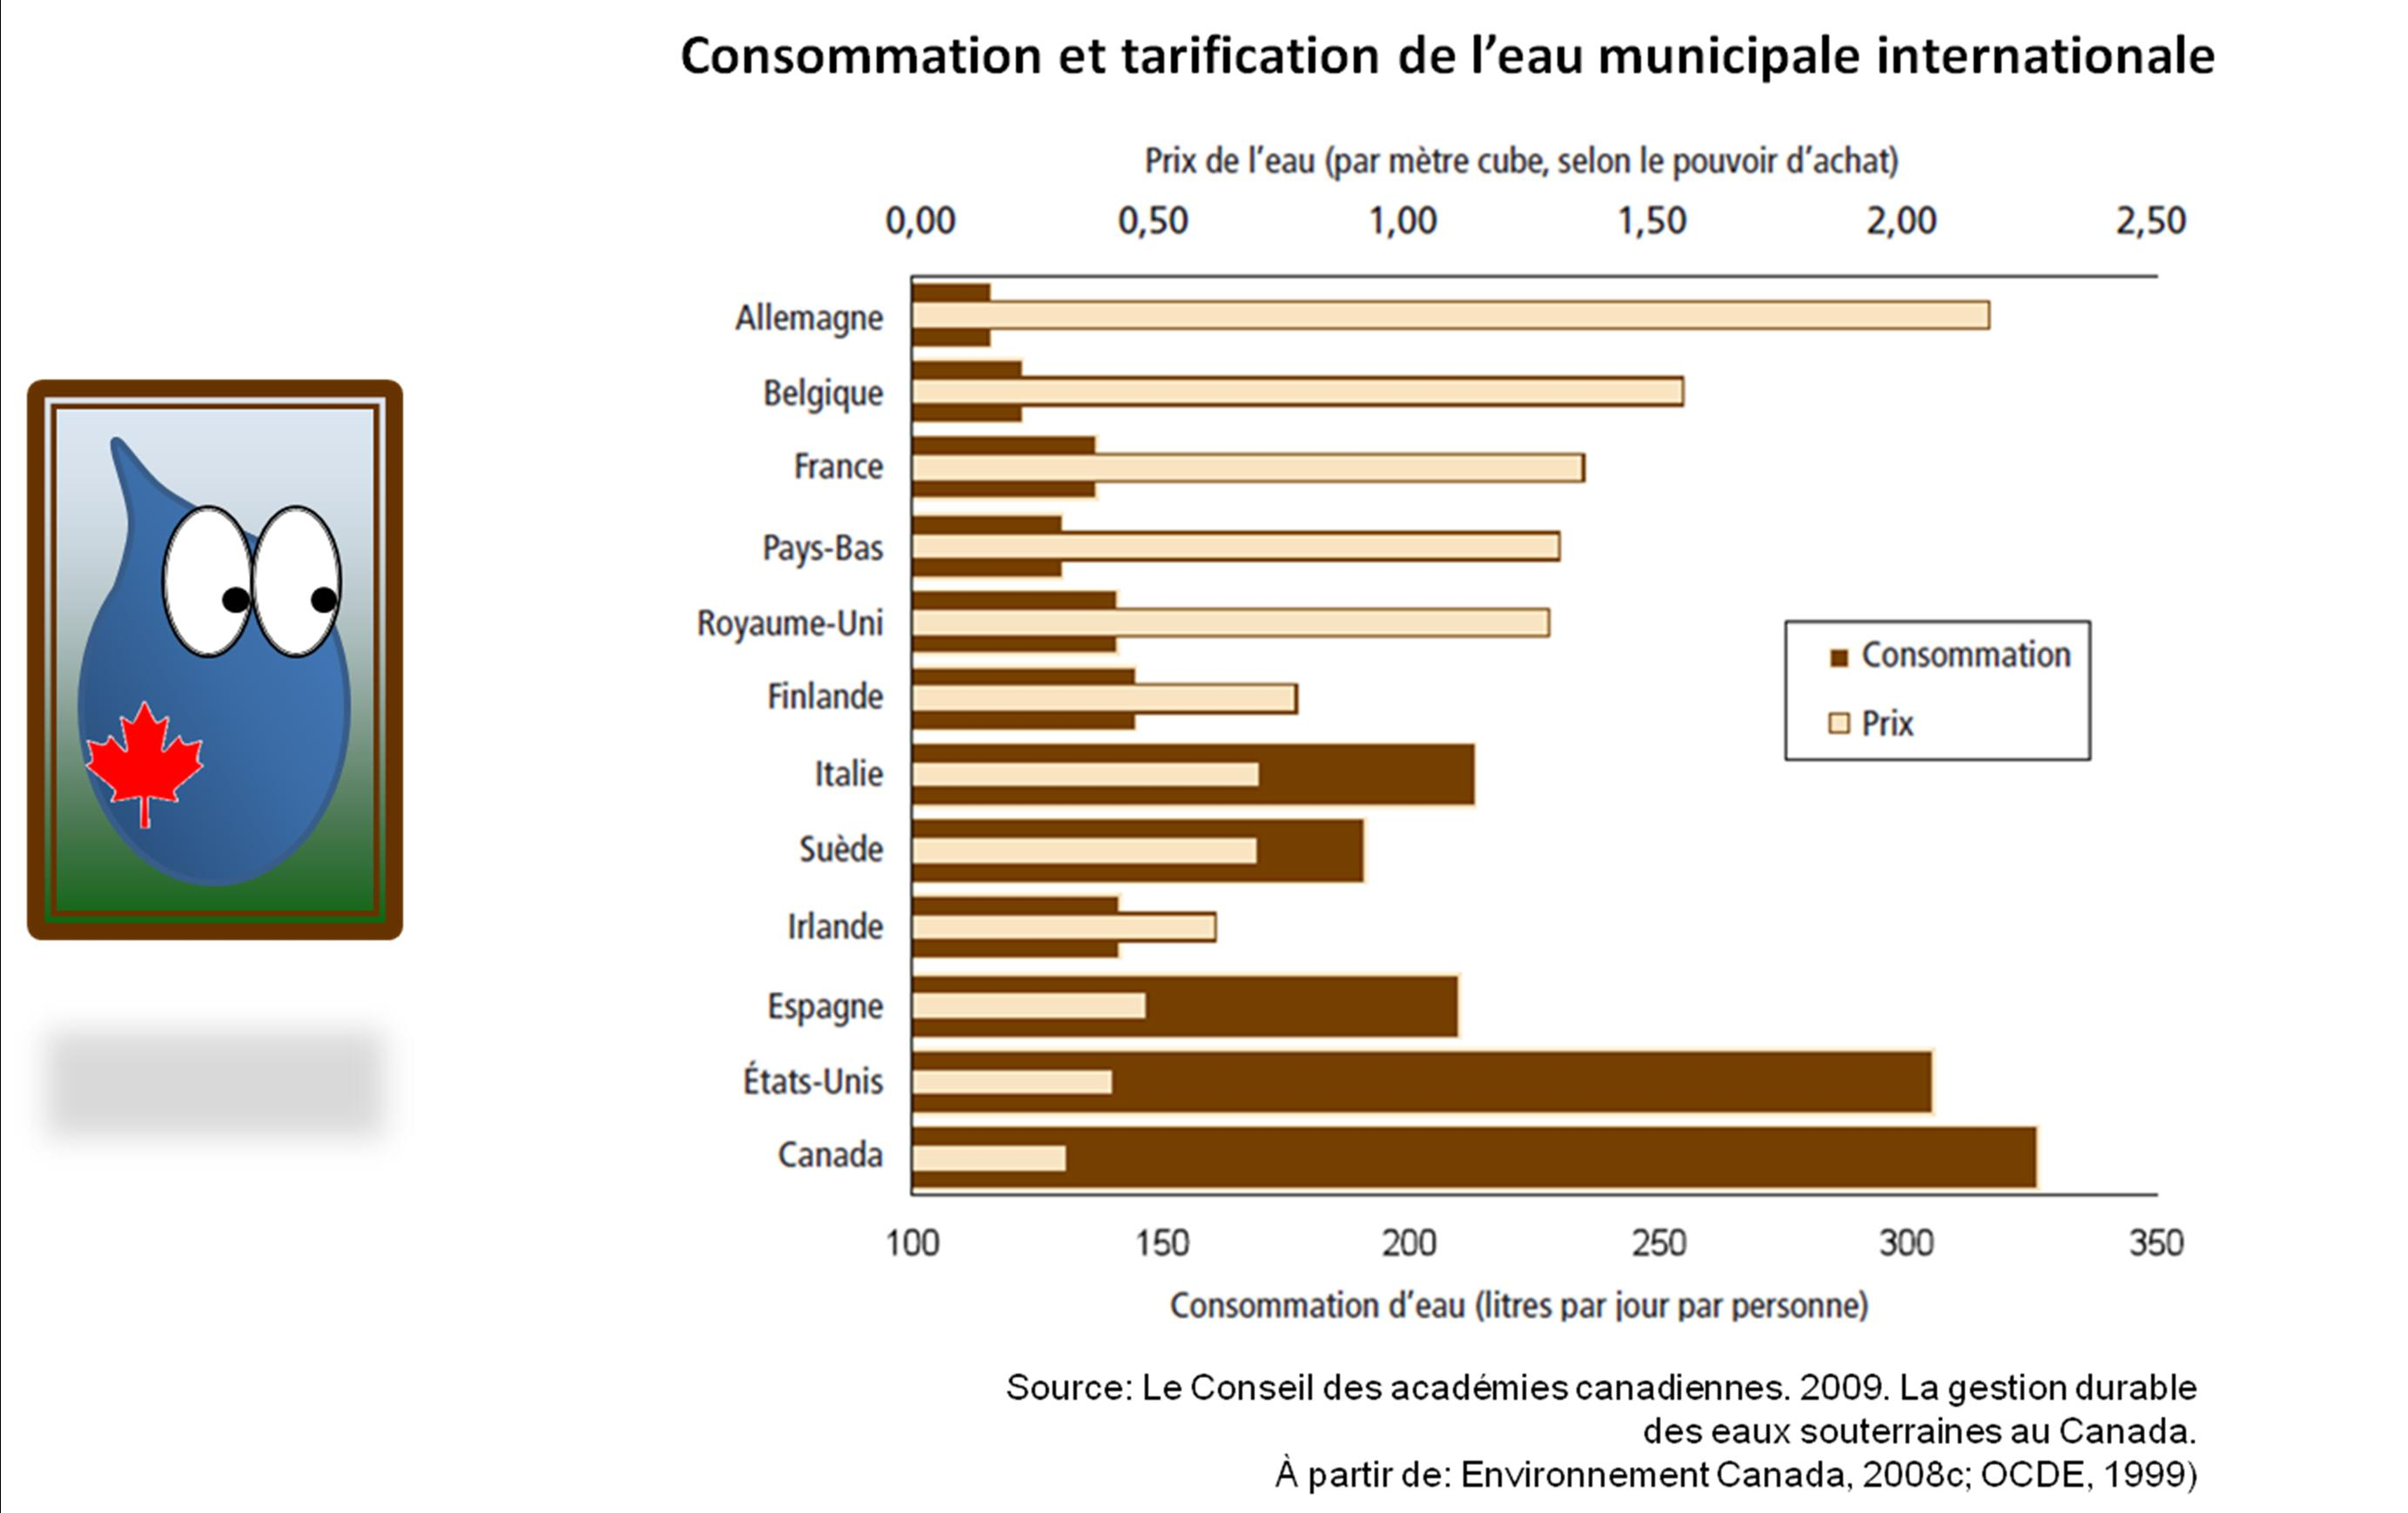 Consommation et tarification d'eau municipale internationale